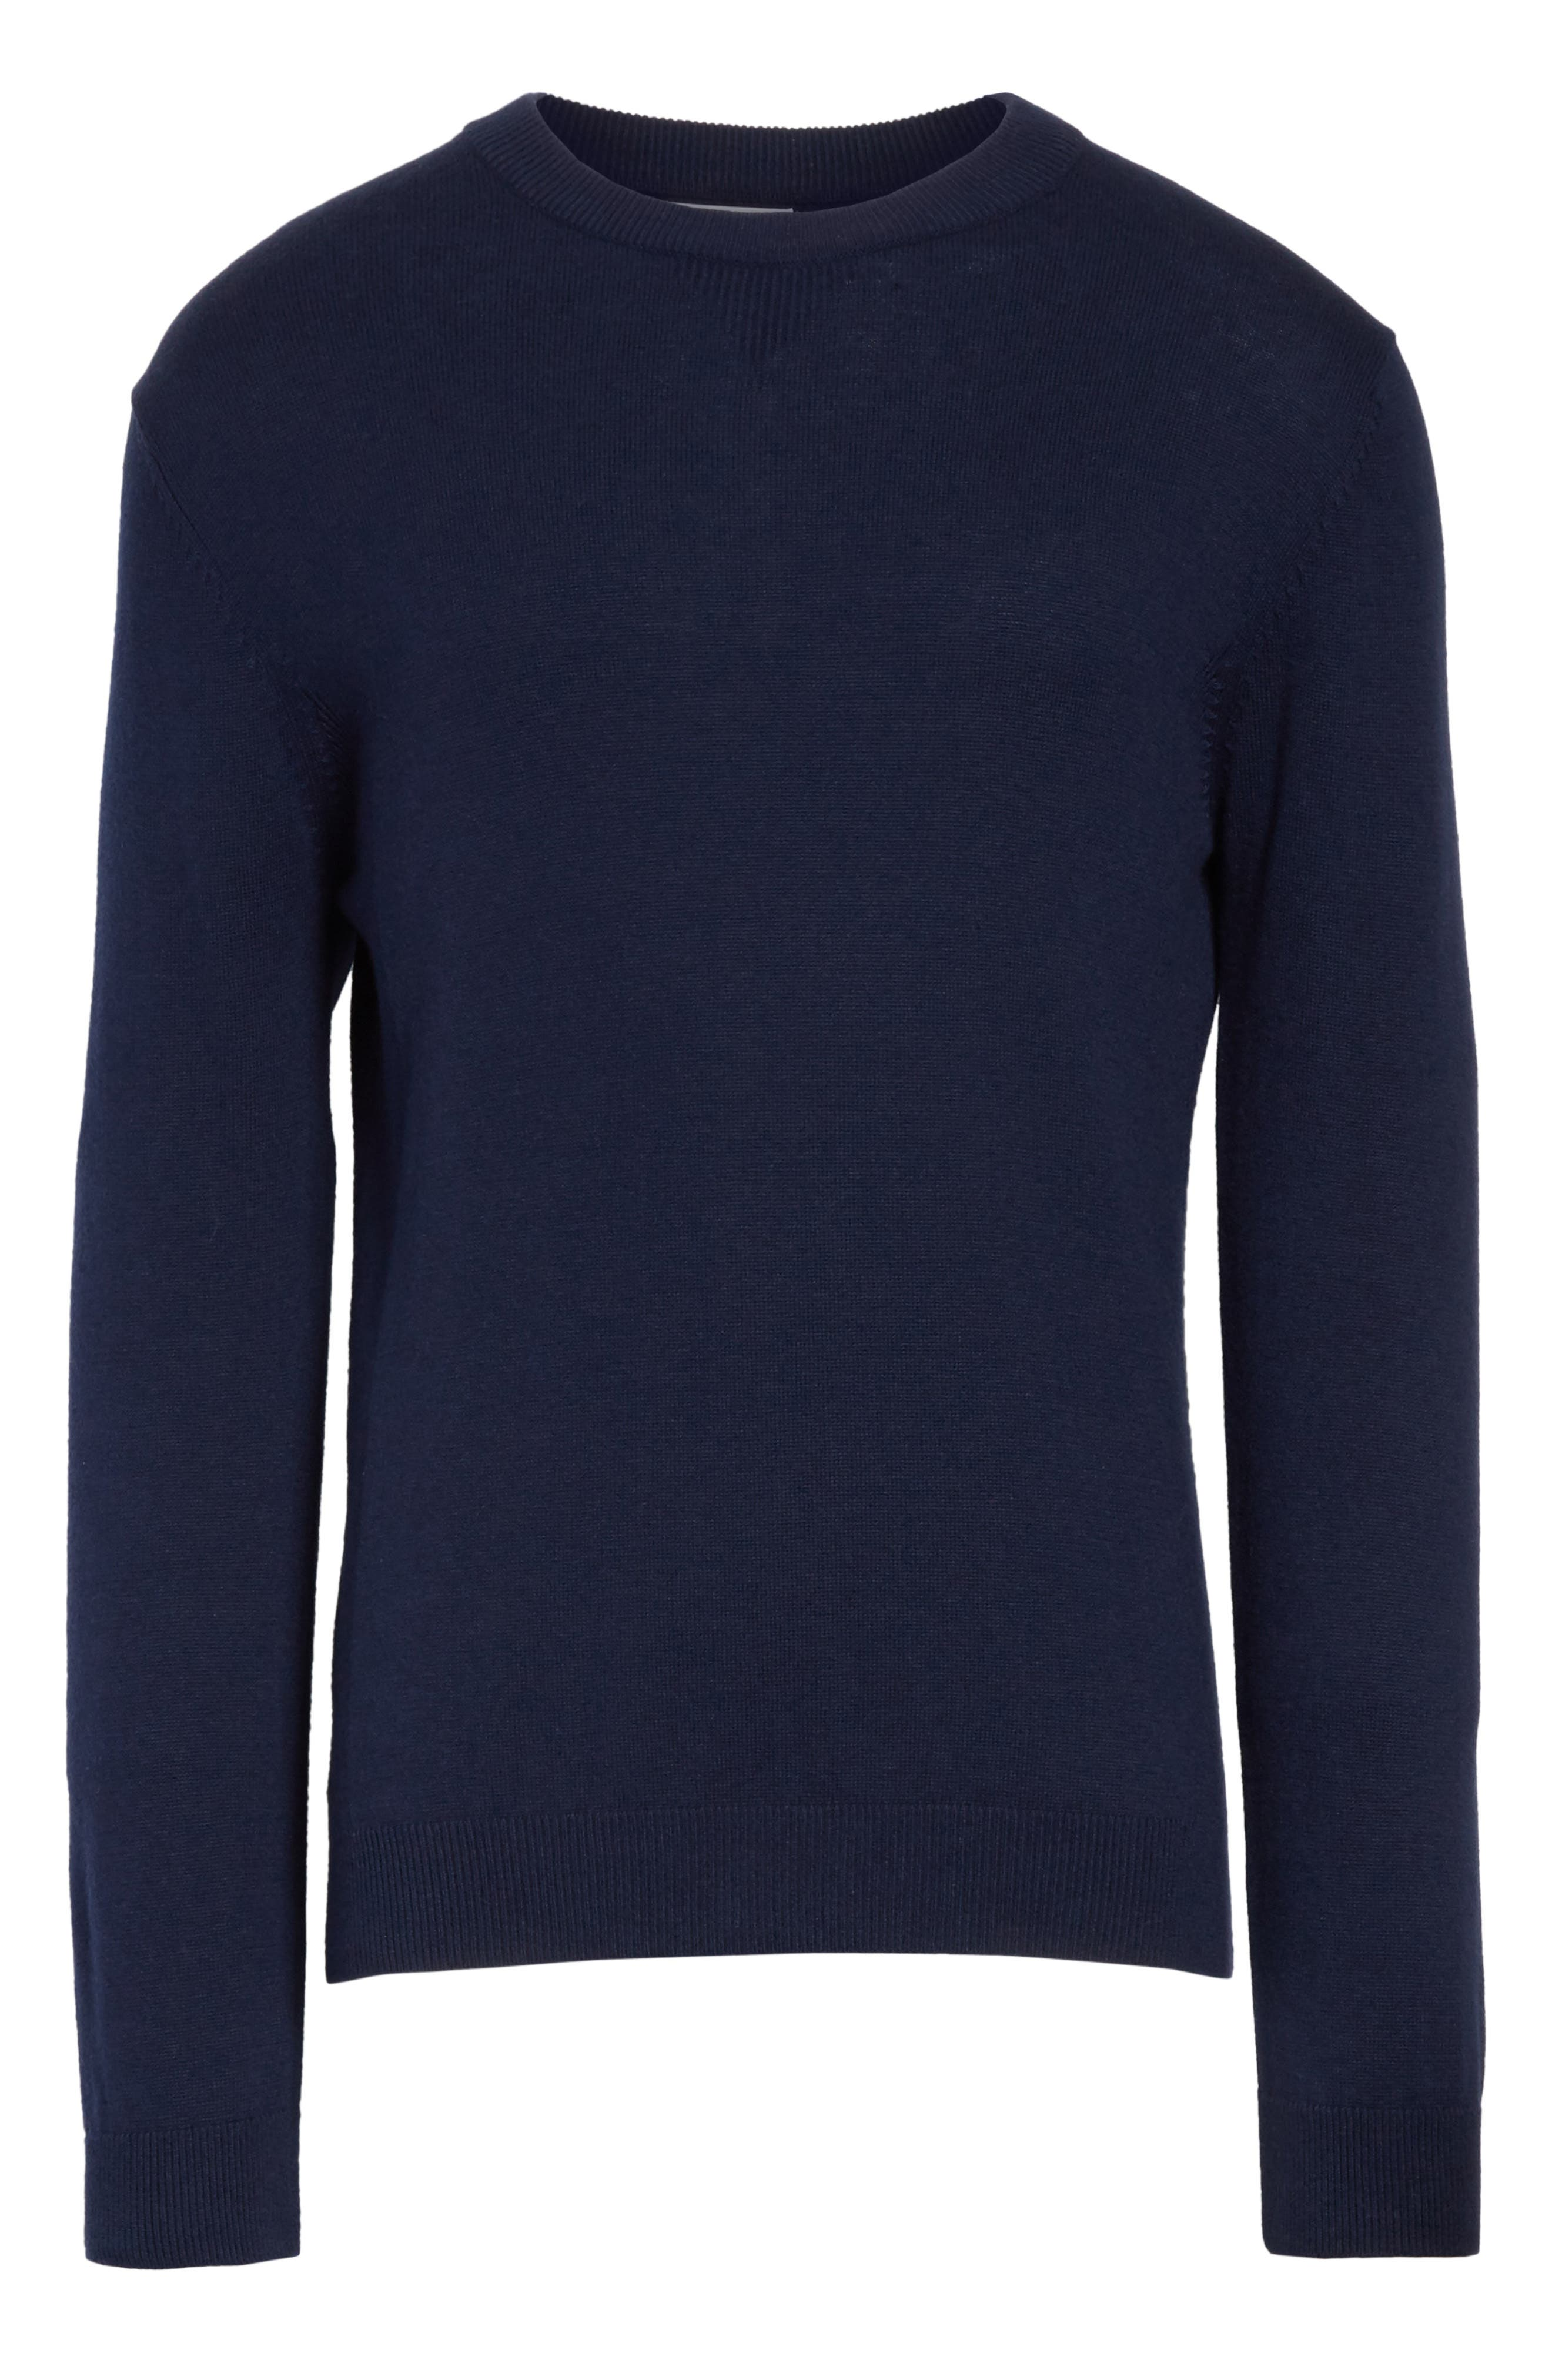 Everyday Classic Crewneck Sweater,                             Alternate thumbnail 6, color,                             401